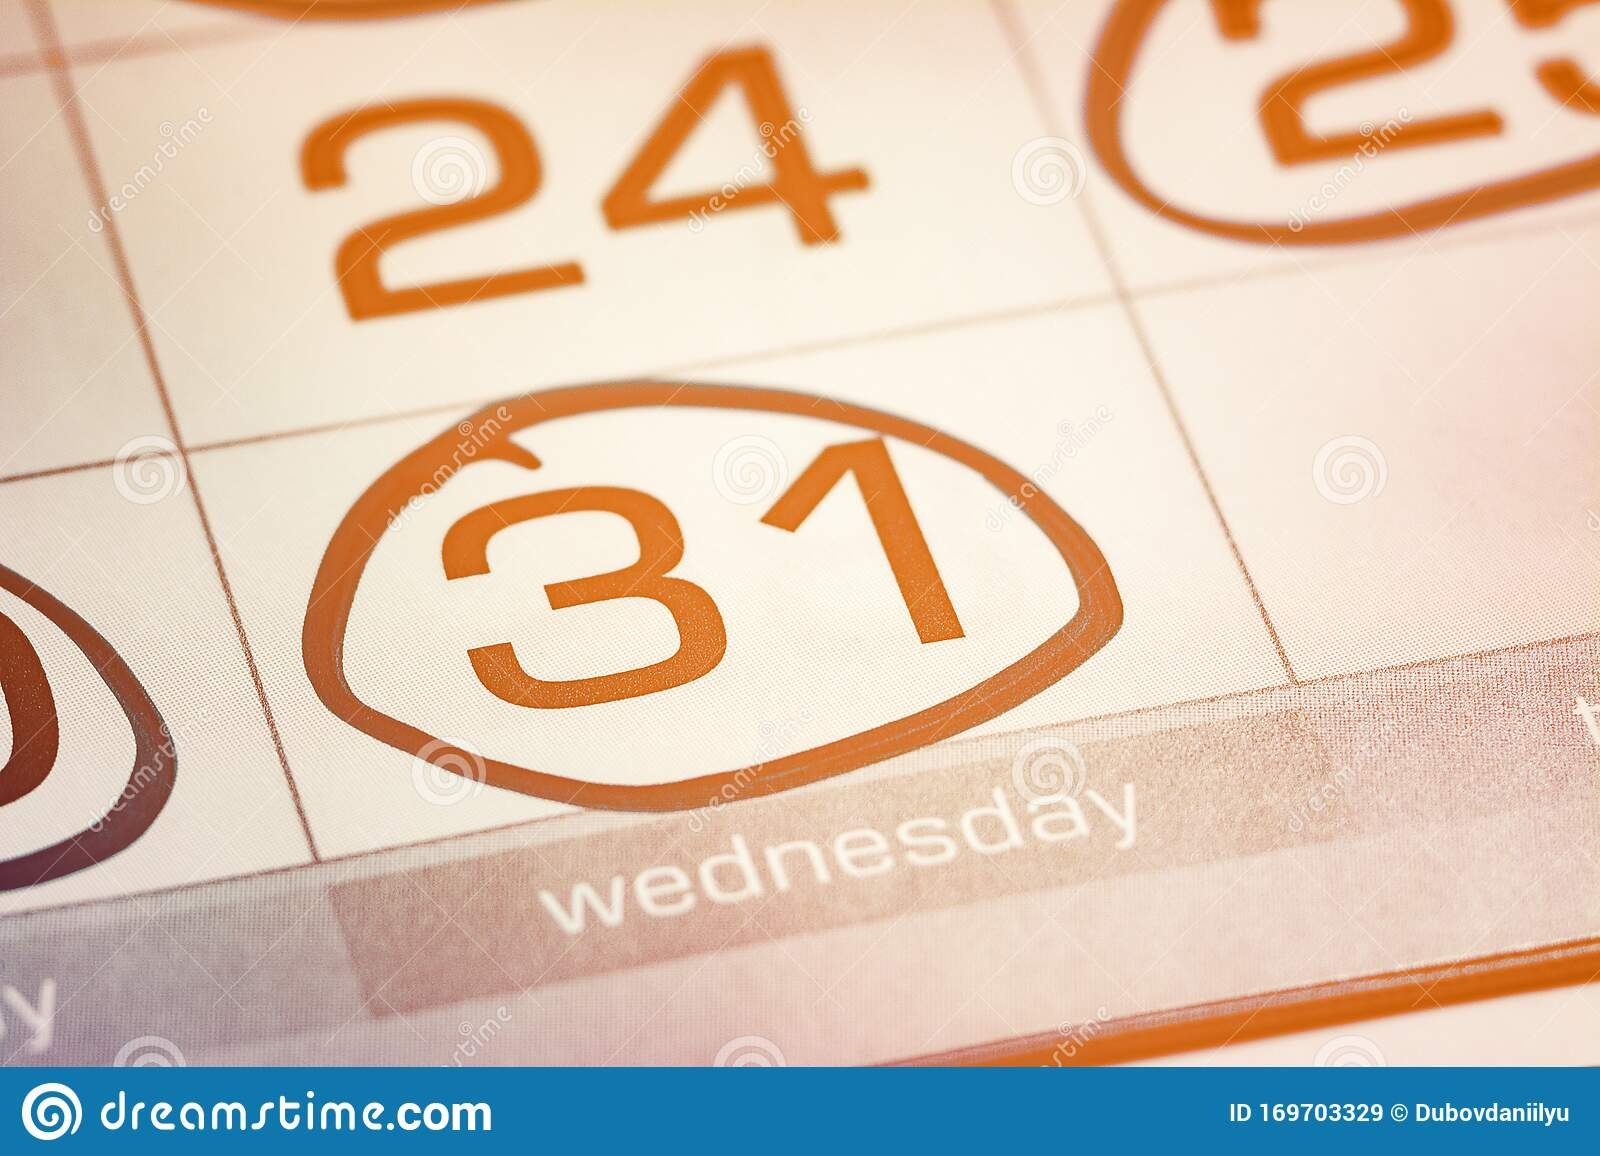 The Thirty-First Day Of The Month Highlighted On The Image Of A Calendar With 2Nd Of Month Highlighted